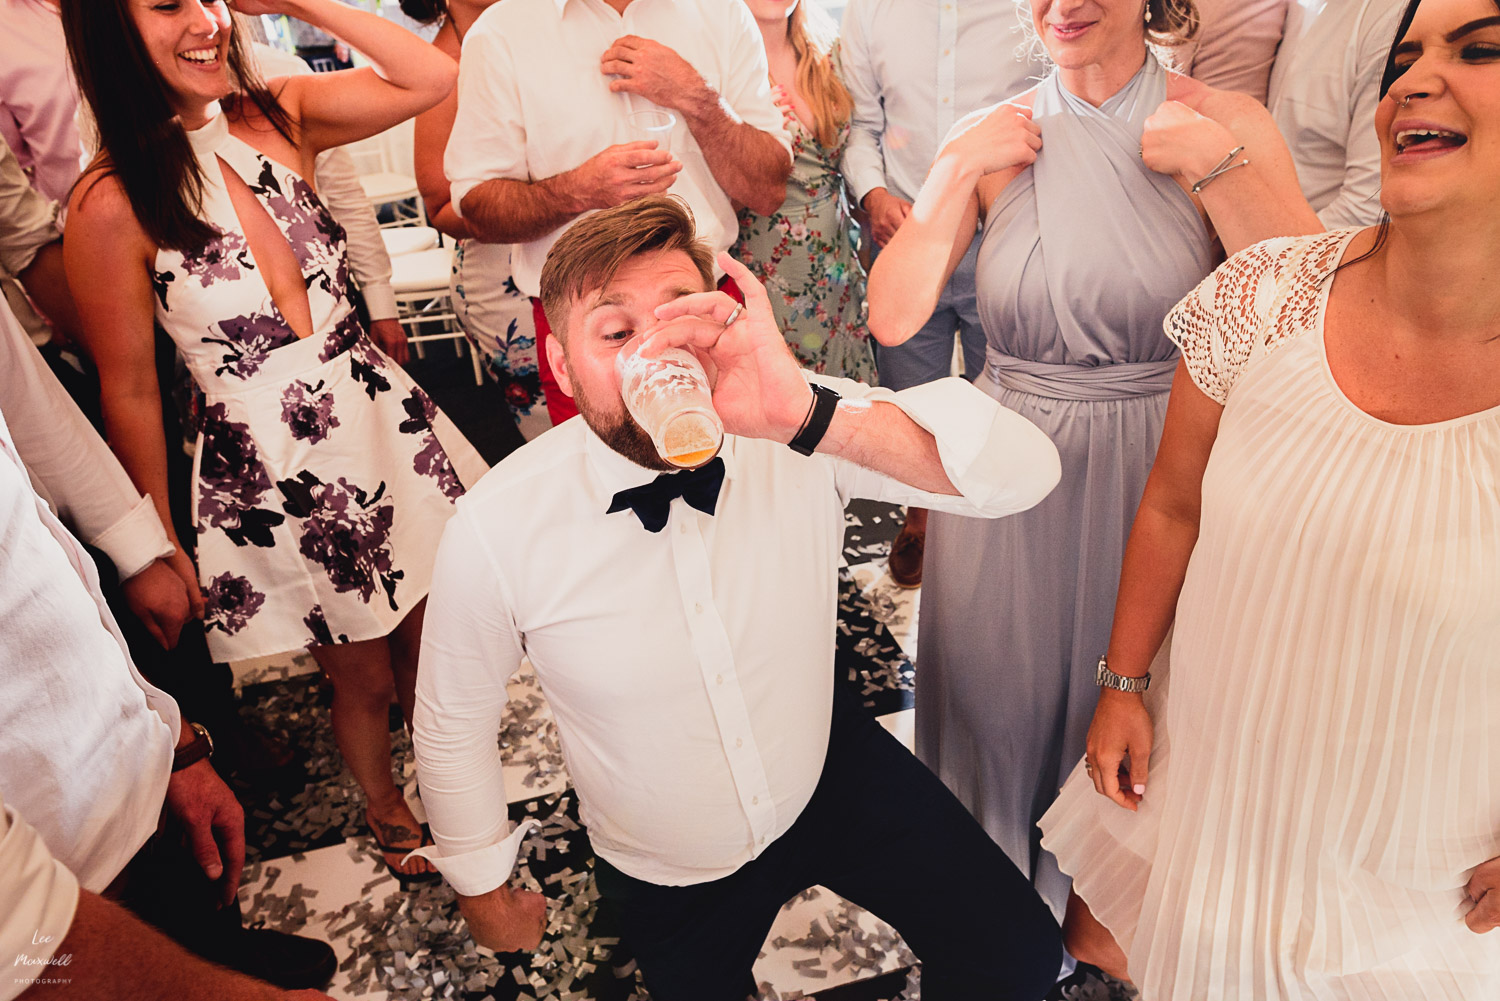 Drinking games at wedding